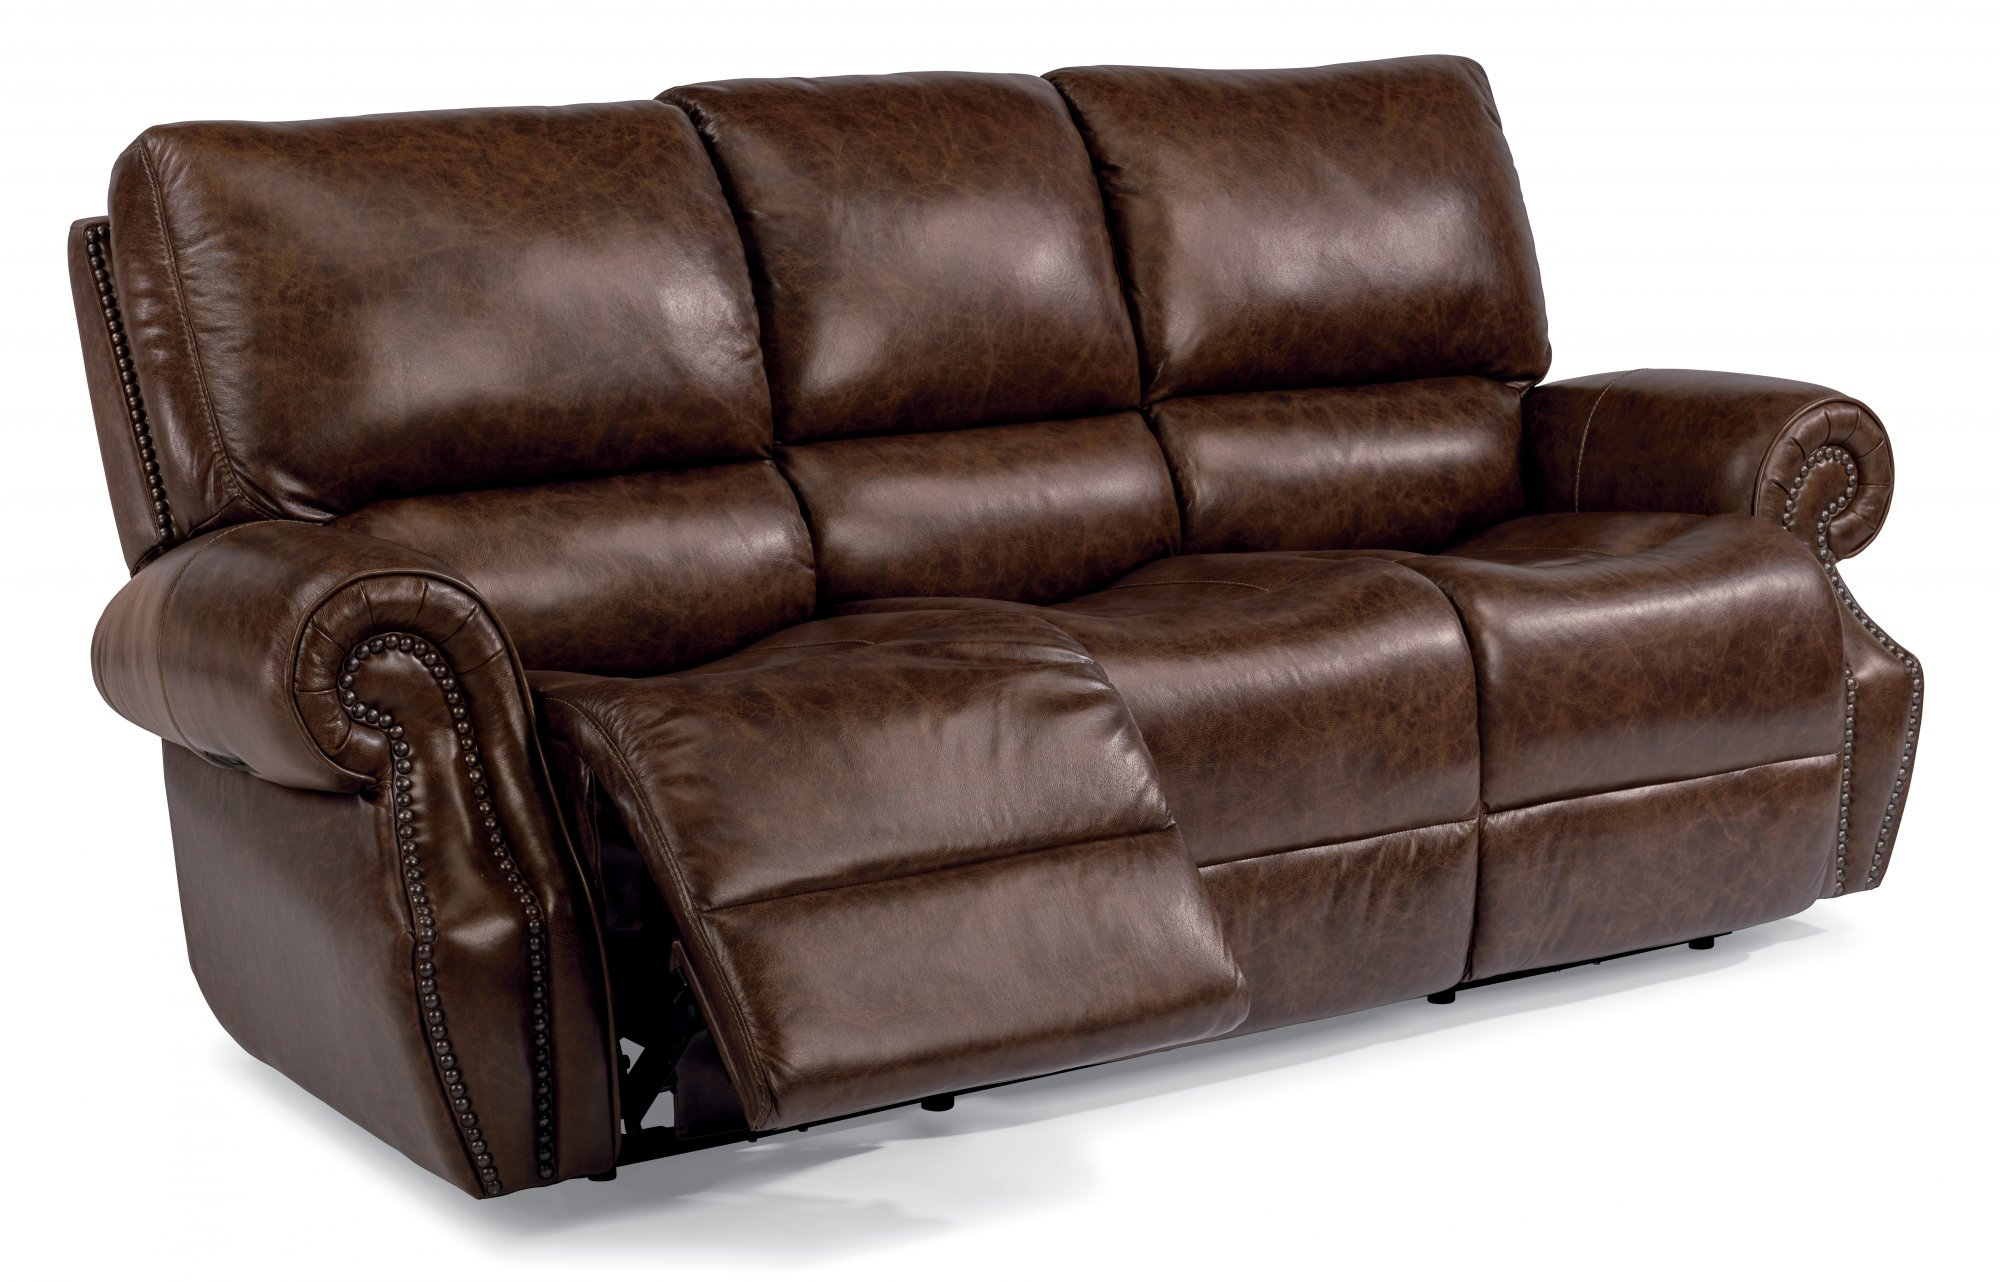 Peachy Flexsteel 1583 62Ph Colton Leather Power Reclining Sofa Dailytribune Chair Design For Home Dailytribuneorg